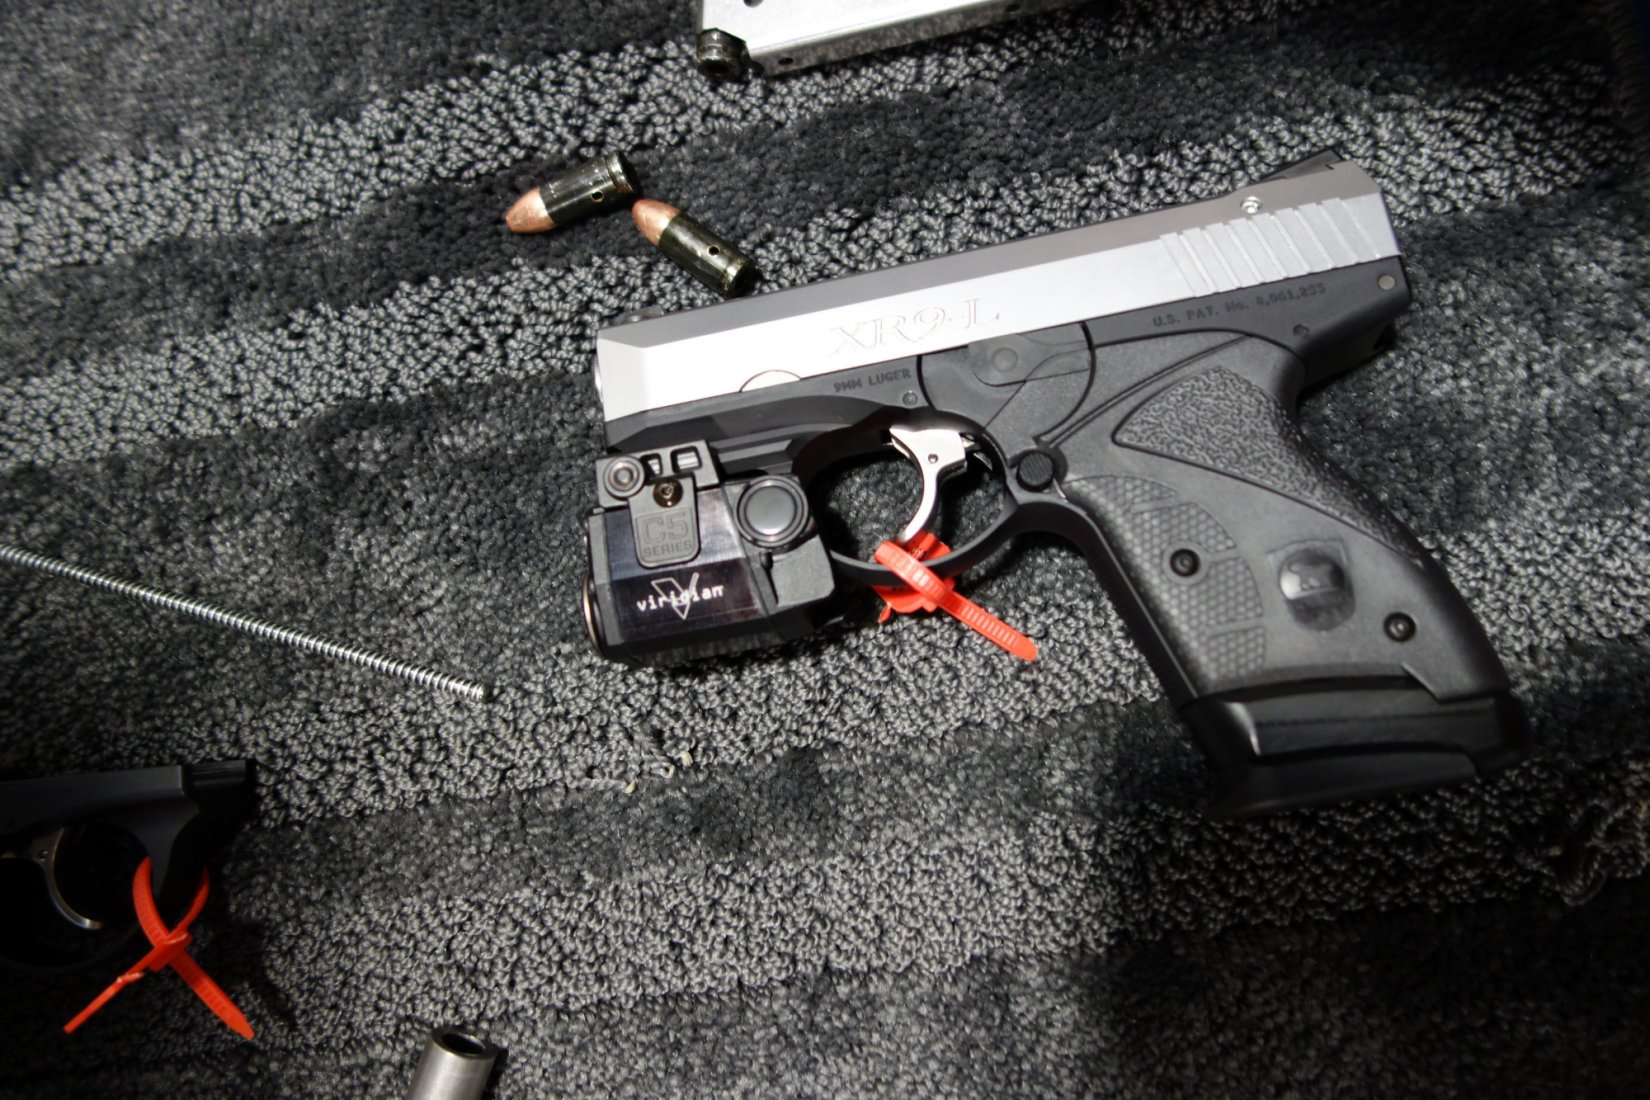 Boberg Arms XR9 L Long Stroke 9mm Sub Compact Semi Auto Pistol with Rotating Barrel SHOT Show 2013 David Crane DefenseReview.com DR 1 Boberg Arms XR9 L Long Stroke, Rotating Barrel Sub Compact Semi Auto 9mm Pistol for Concealed Carry (CCW): Big Gun Ballistic Performance in a Small Package! (Video!)